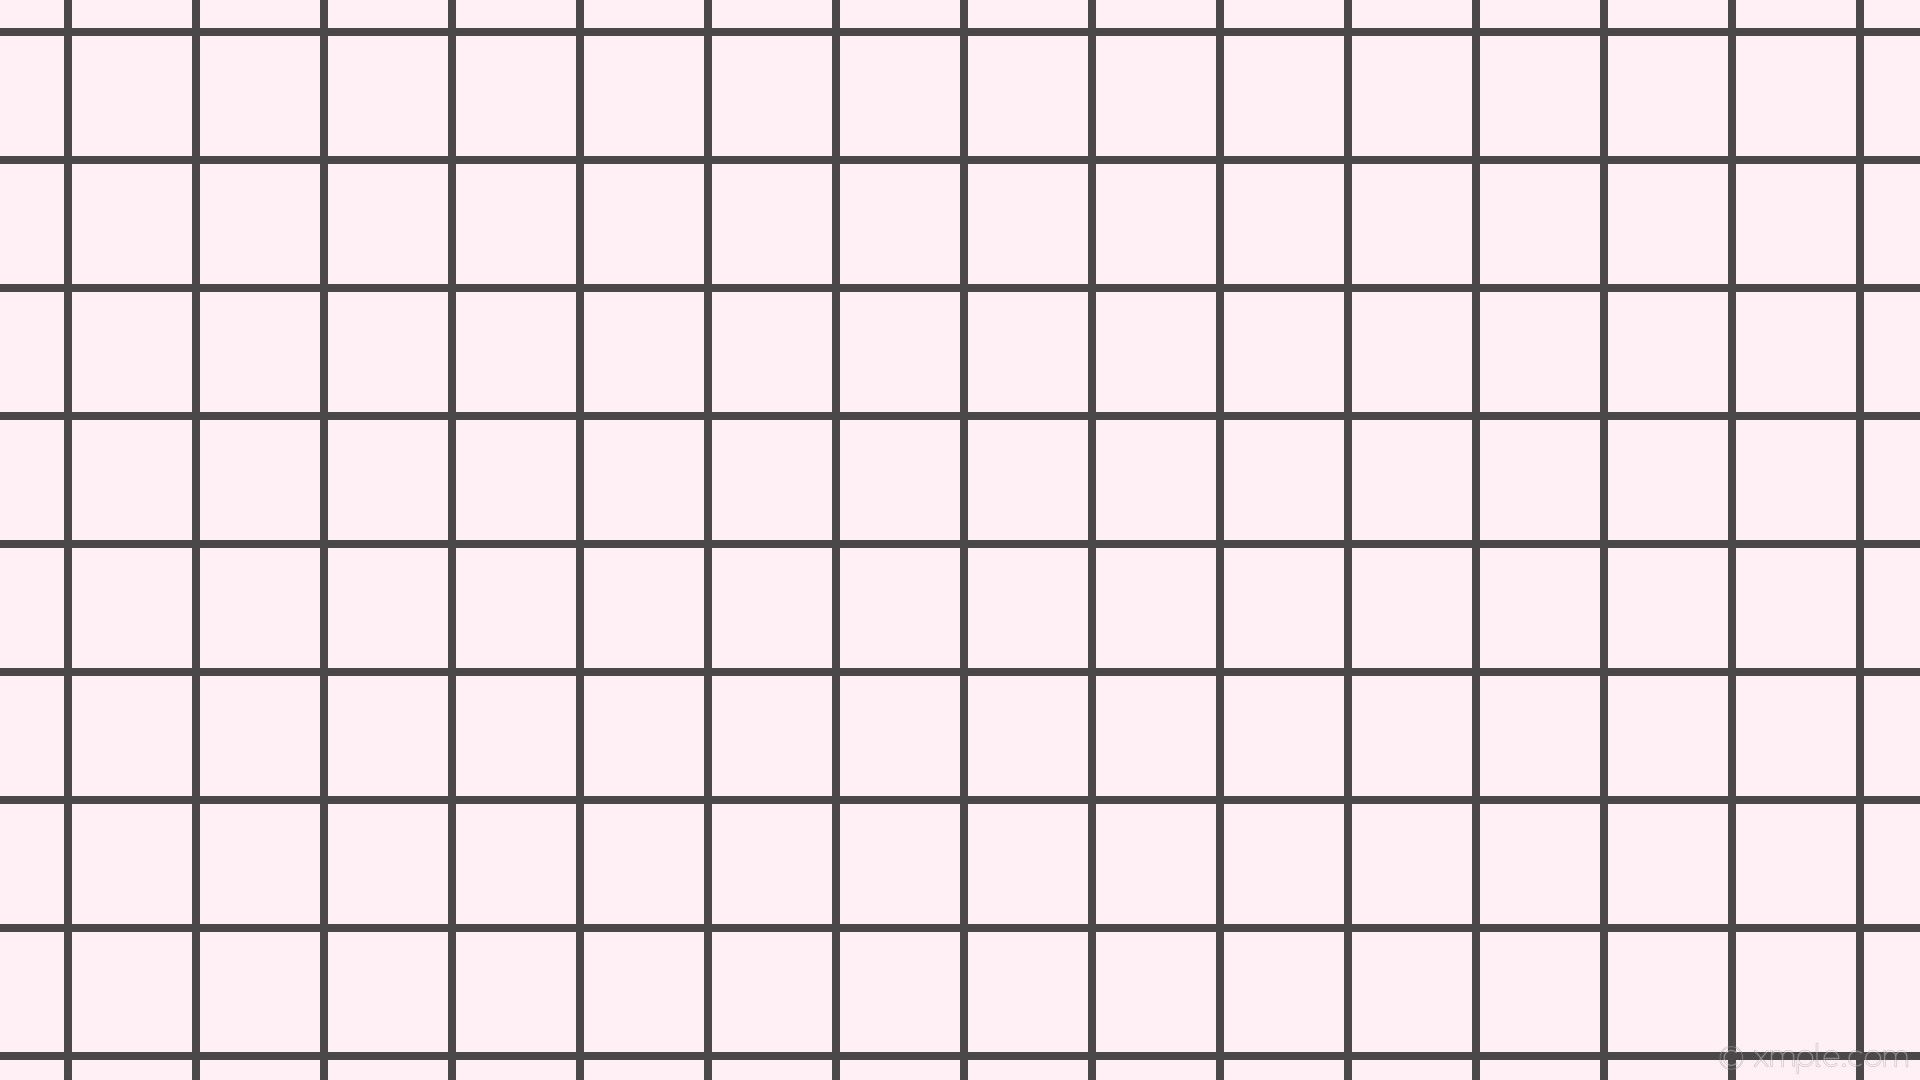 White Grid Aesthetic Wallpapers   Top White Grid Aesthetic 1920x1080